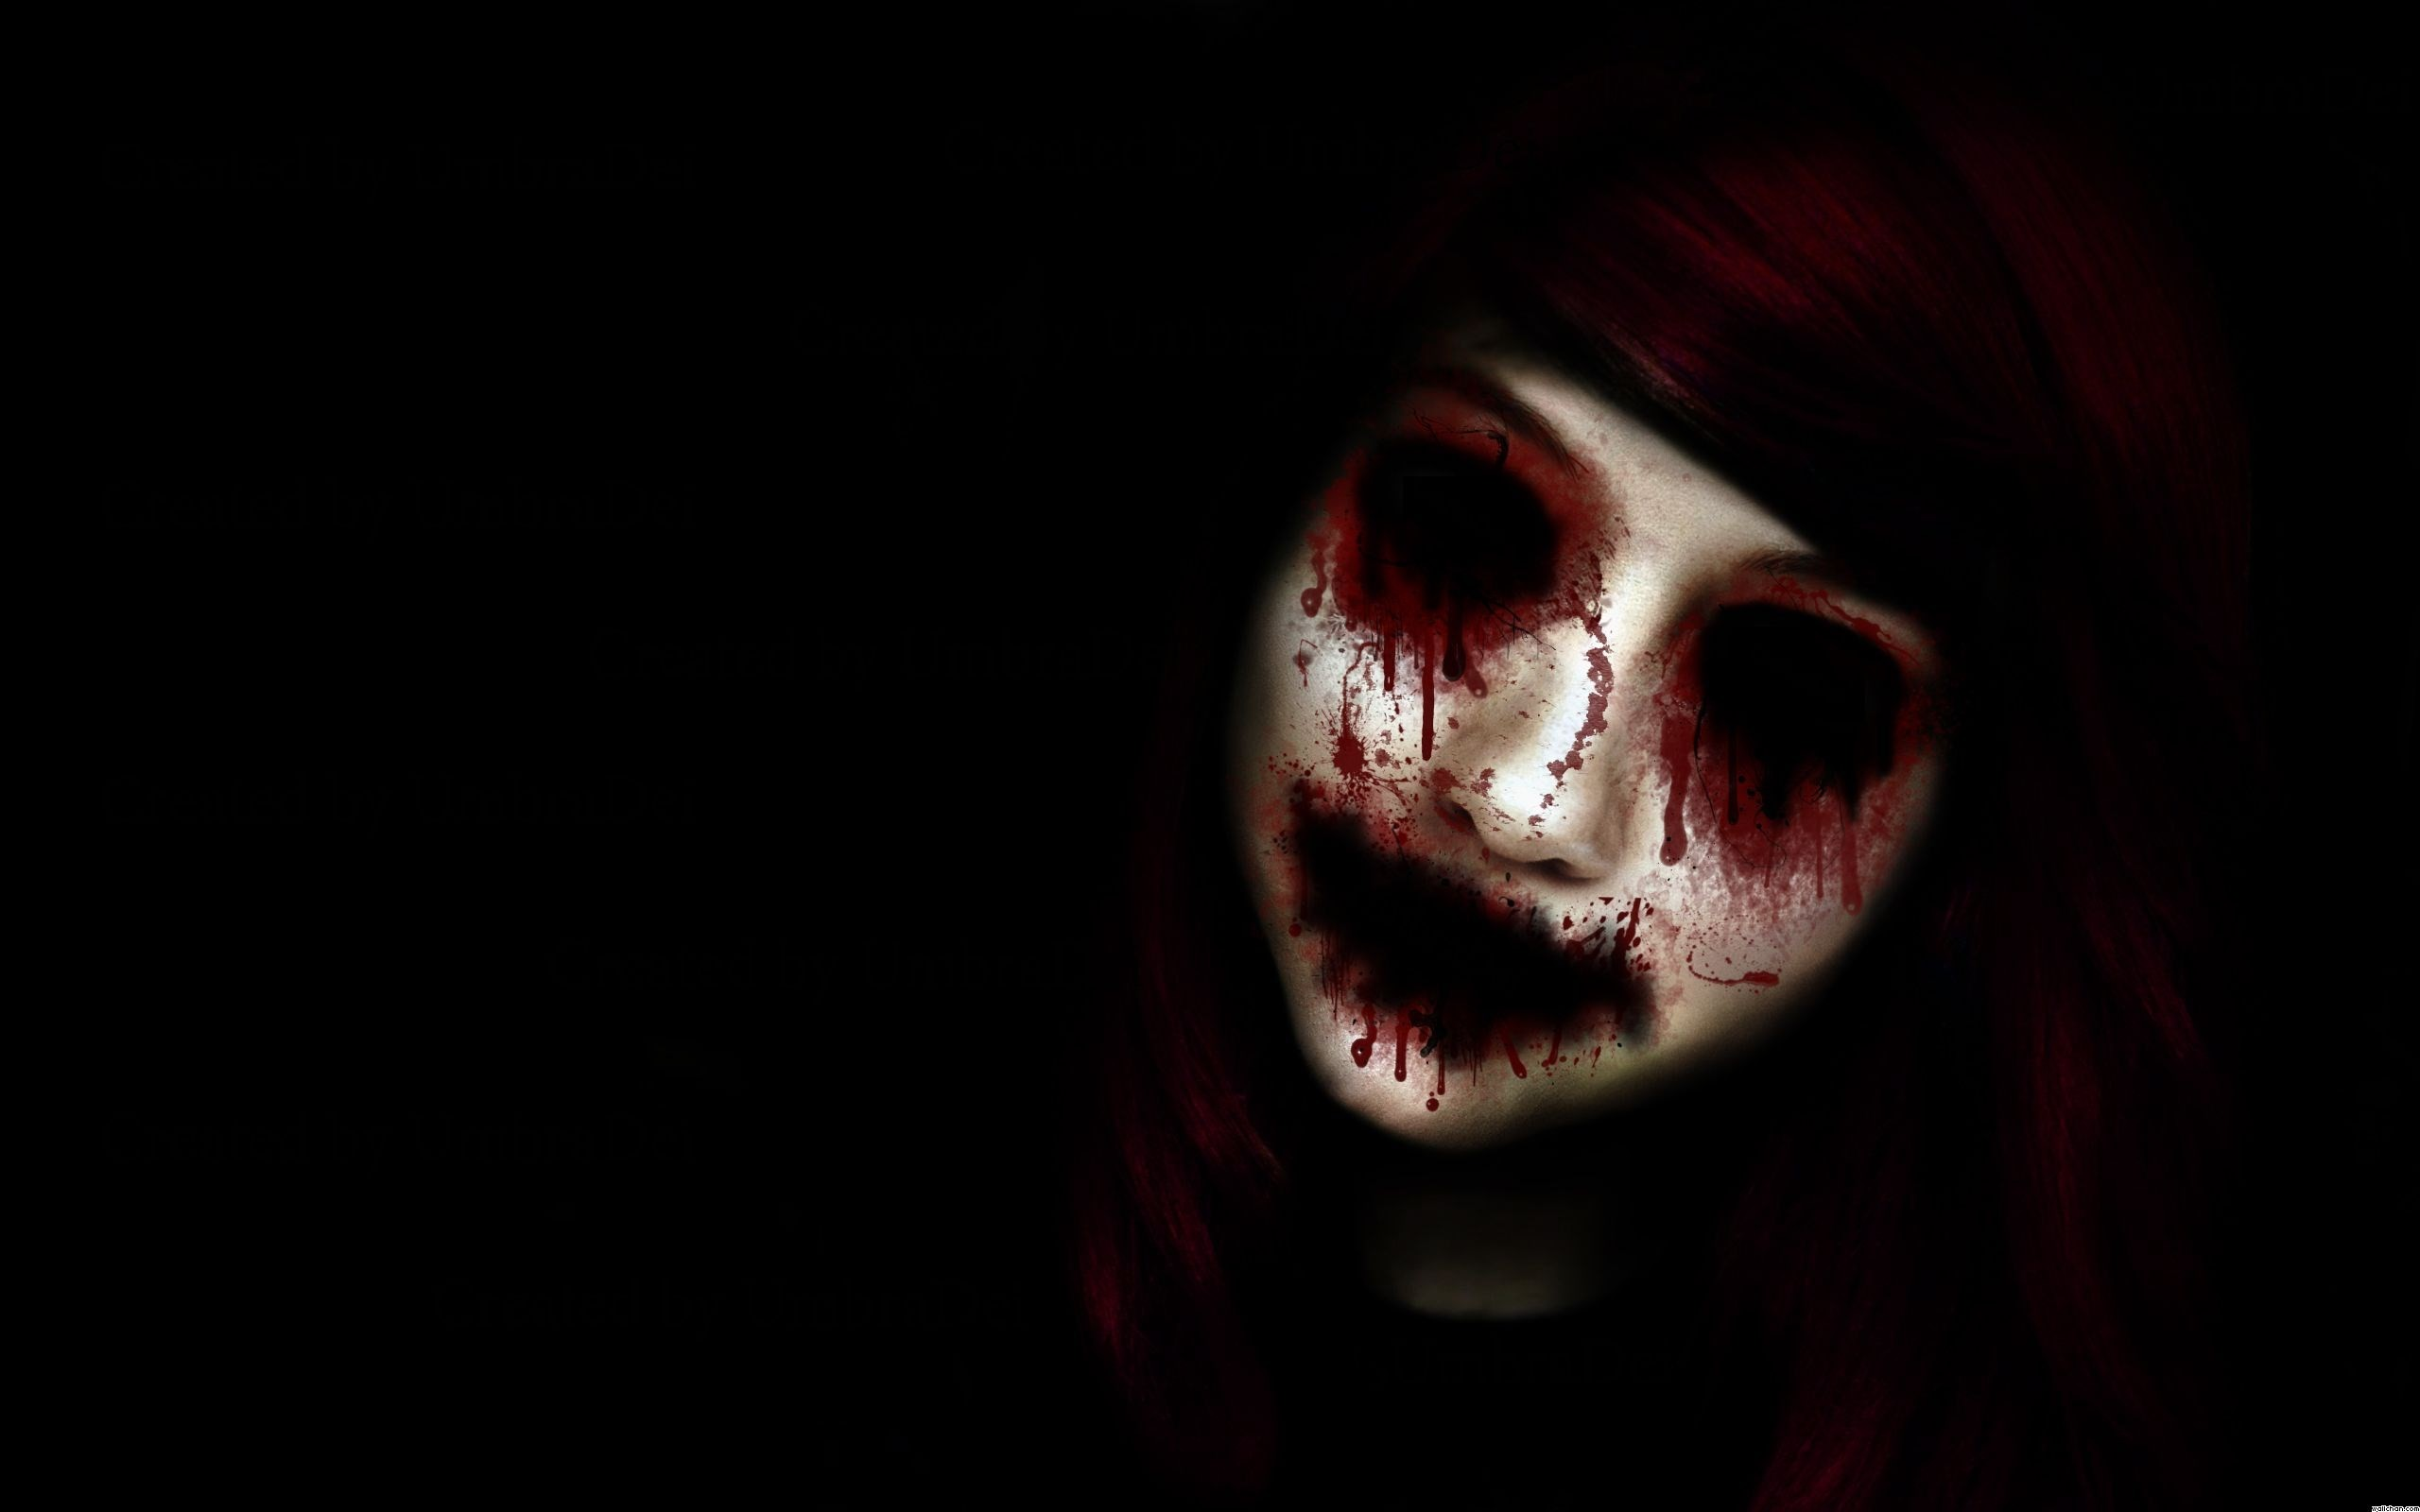 scary face picture – Full HD Wallpapers, Photos, 141 kB – Wilburn Mason